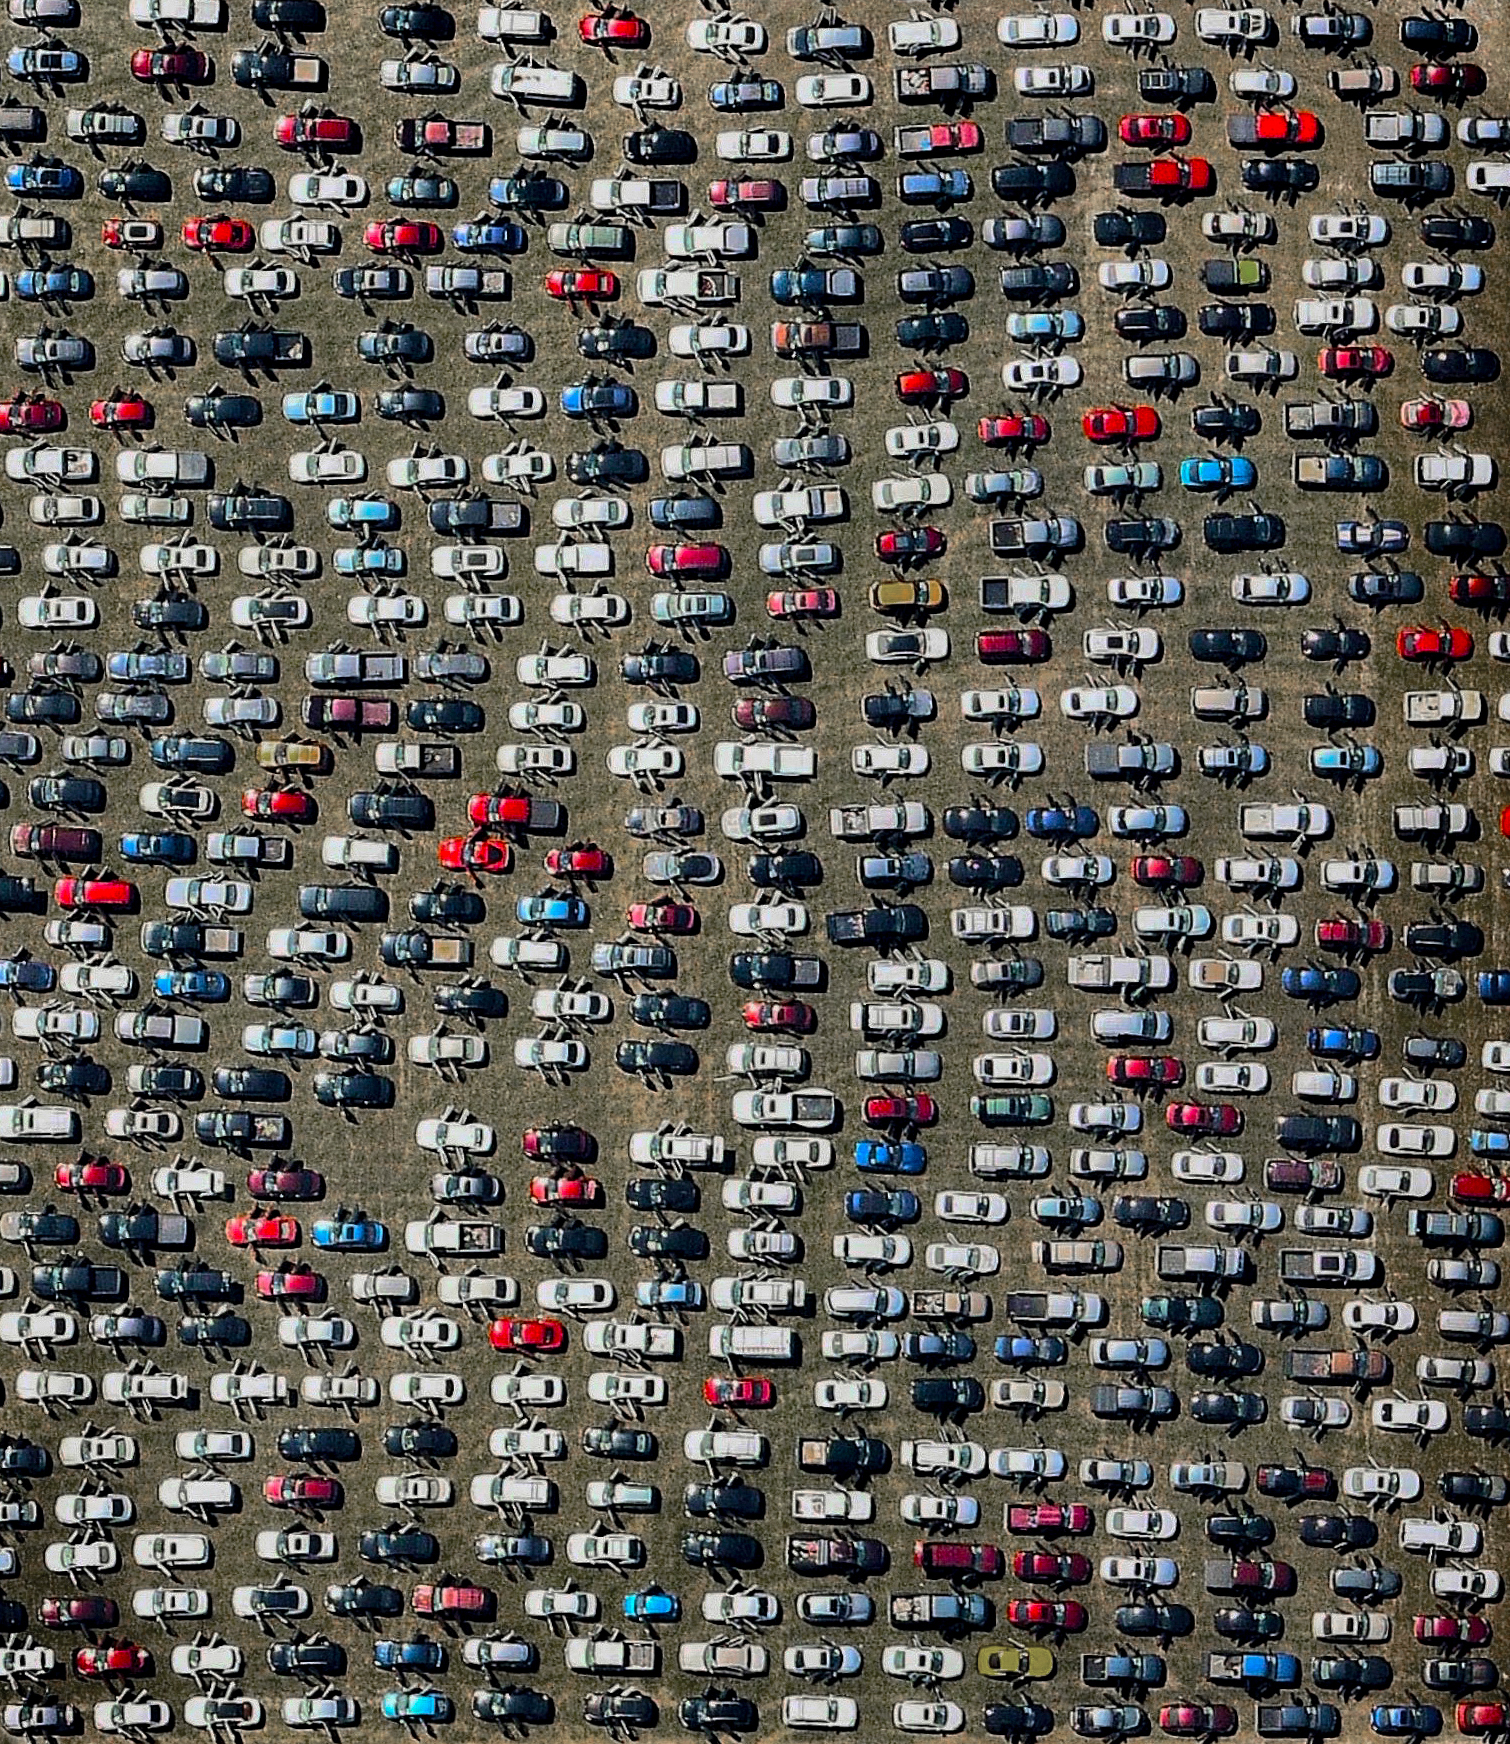 Hundreds of abandoned cars that were damaged by Hurricane Harvey are seen at the Royal Purple Raceway in Houston, Texas, USA. It is estimated that 30,000 now fill the lot and more than a half a million cars were damaged by the storm's floodwaters. The cars will remain here until insurance adjusters assess the damage and process claims for each vehicle.  29.786157, -94.878034